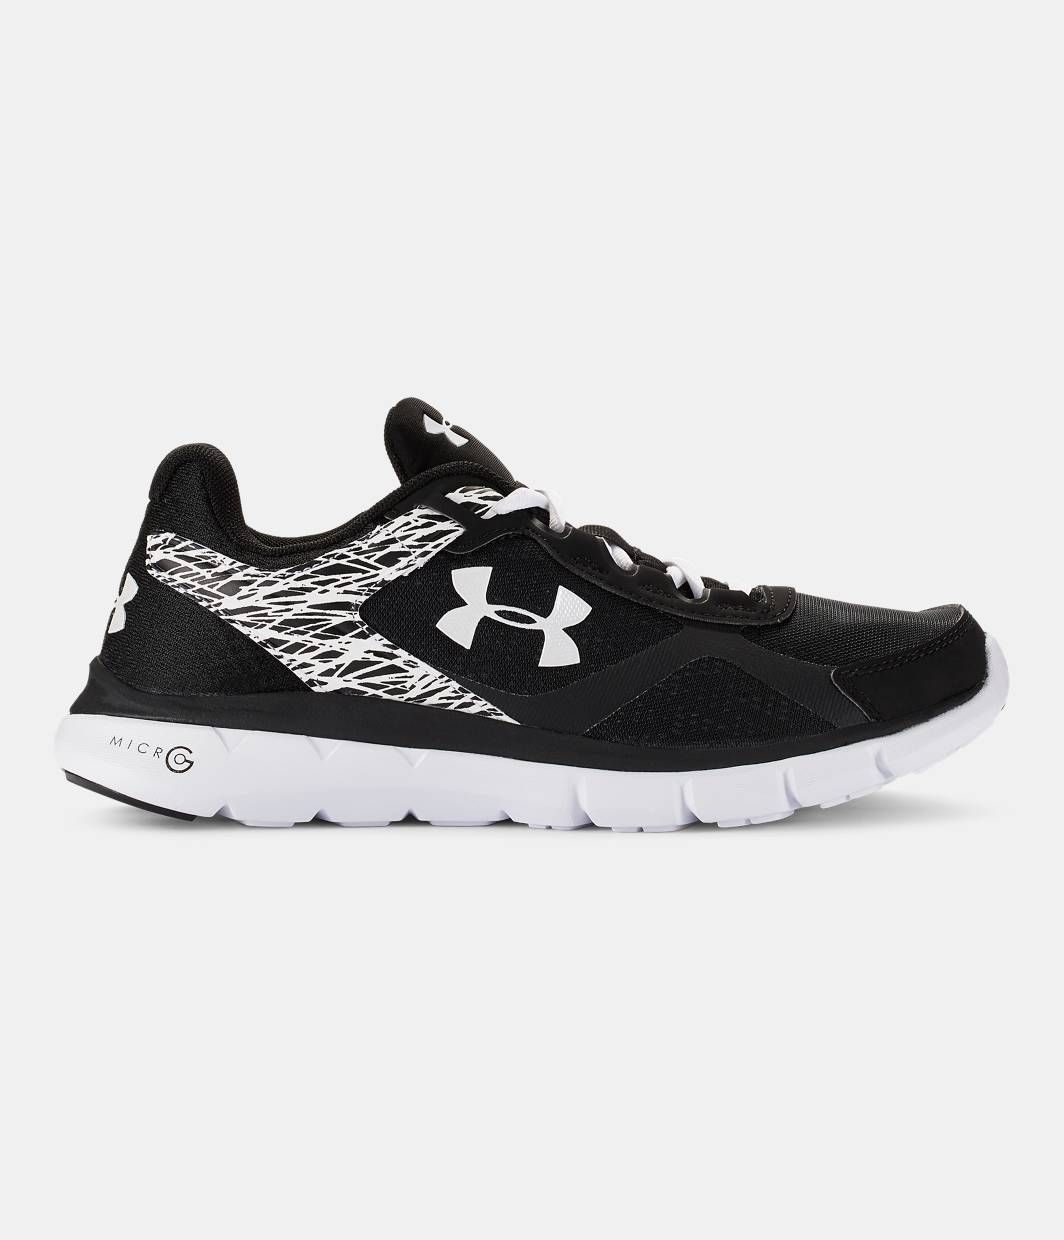 46eb7c30b3 Women's UA Micro G® Velocity Running Shoes | Under Armour US | SHOES ...